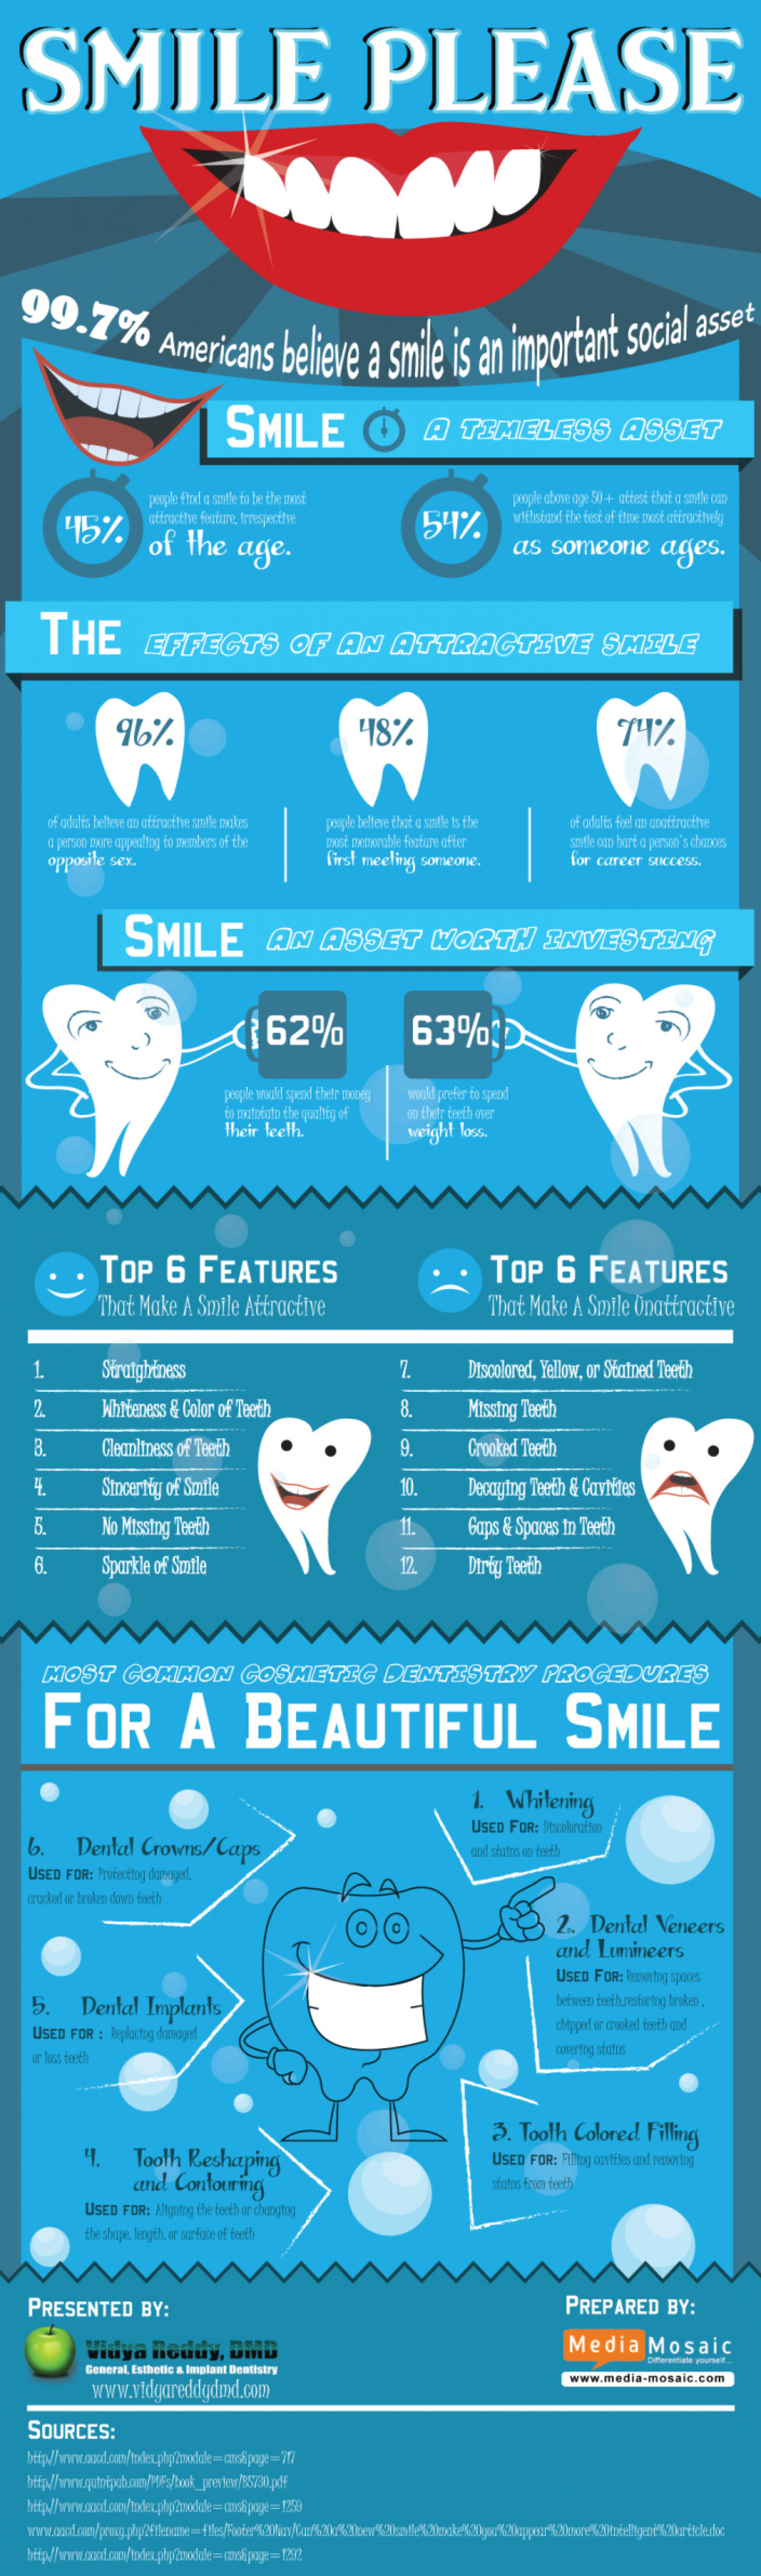 Smile Please Infographic